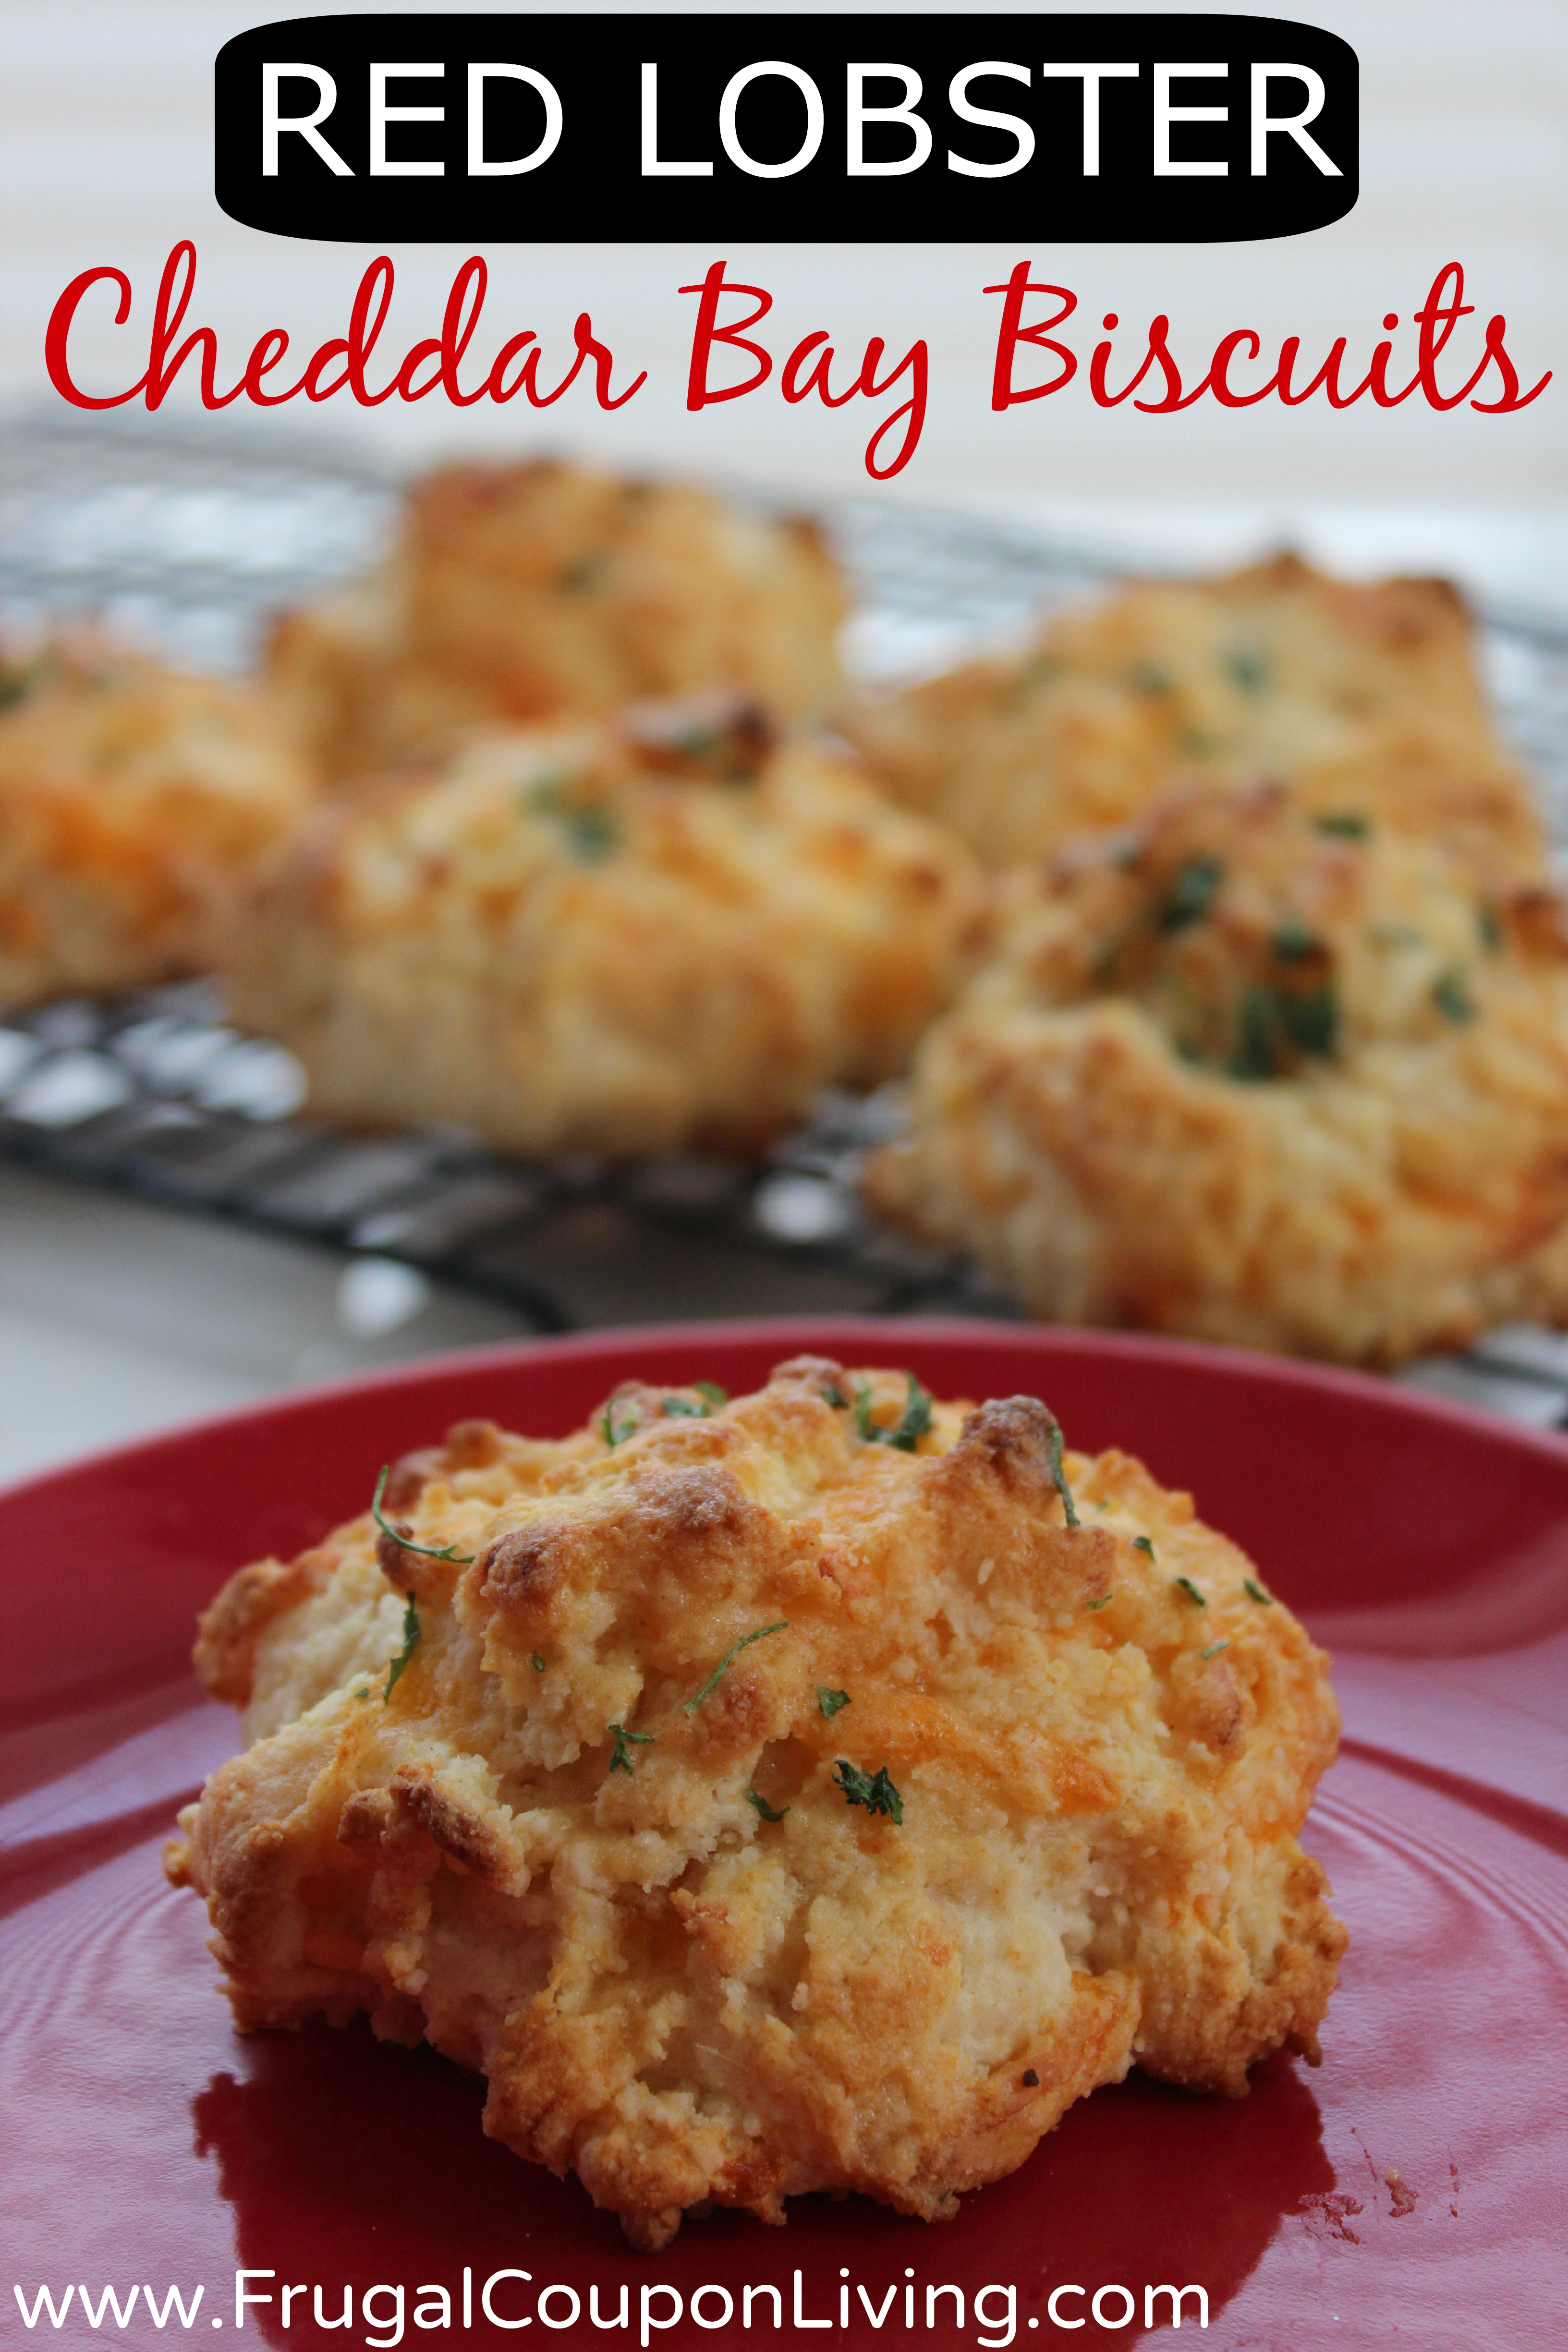 Copy-Cat-Recipe-Red-Lobster-Cheddar-Bay-Biscuit-Frugal-Coupon-Living